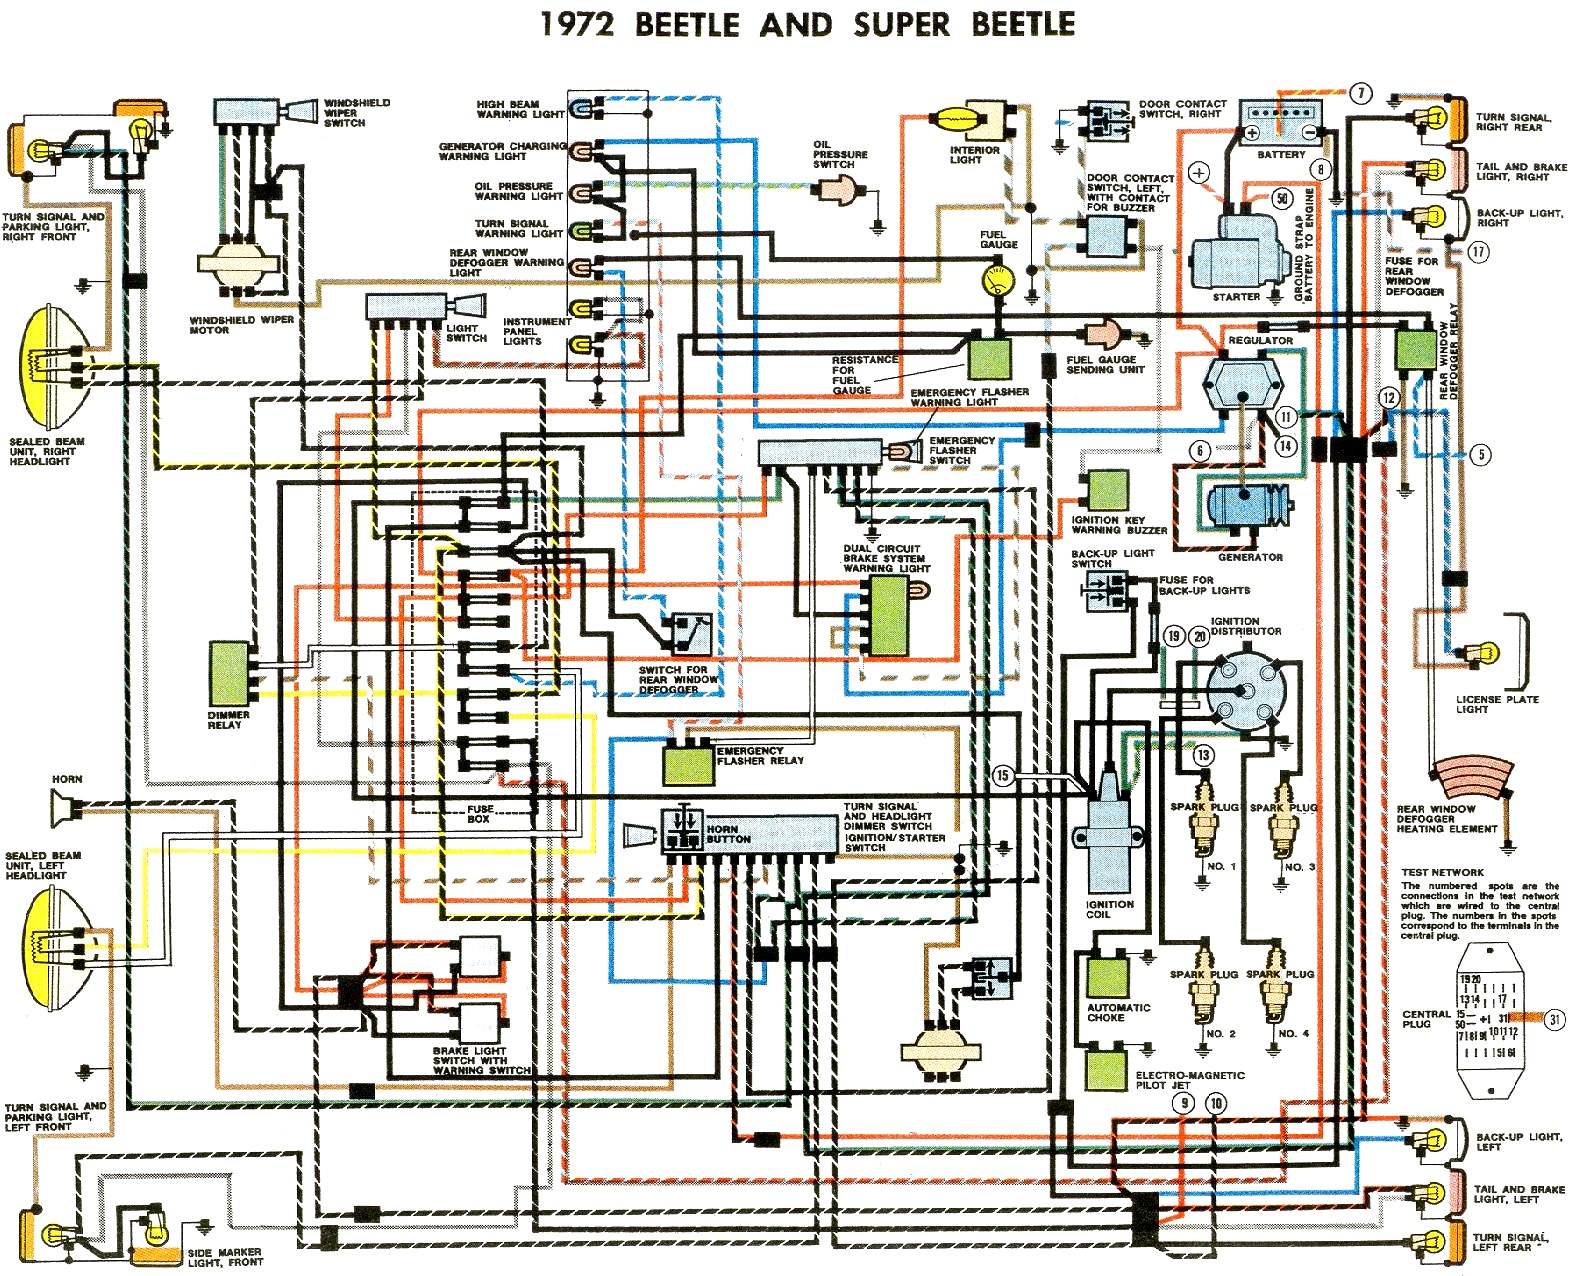 bug_72 1972 beetle wiring diagram thegoldenbug com beetle wiring diagram to fix a/c fan at n-0.co